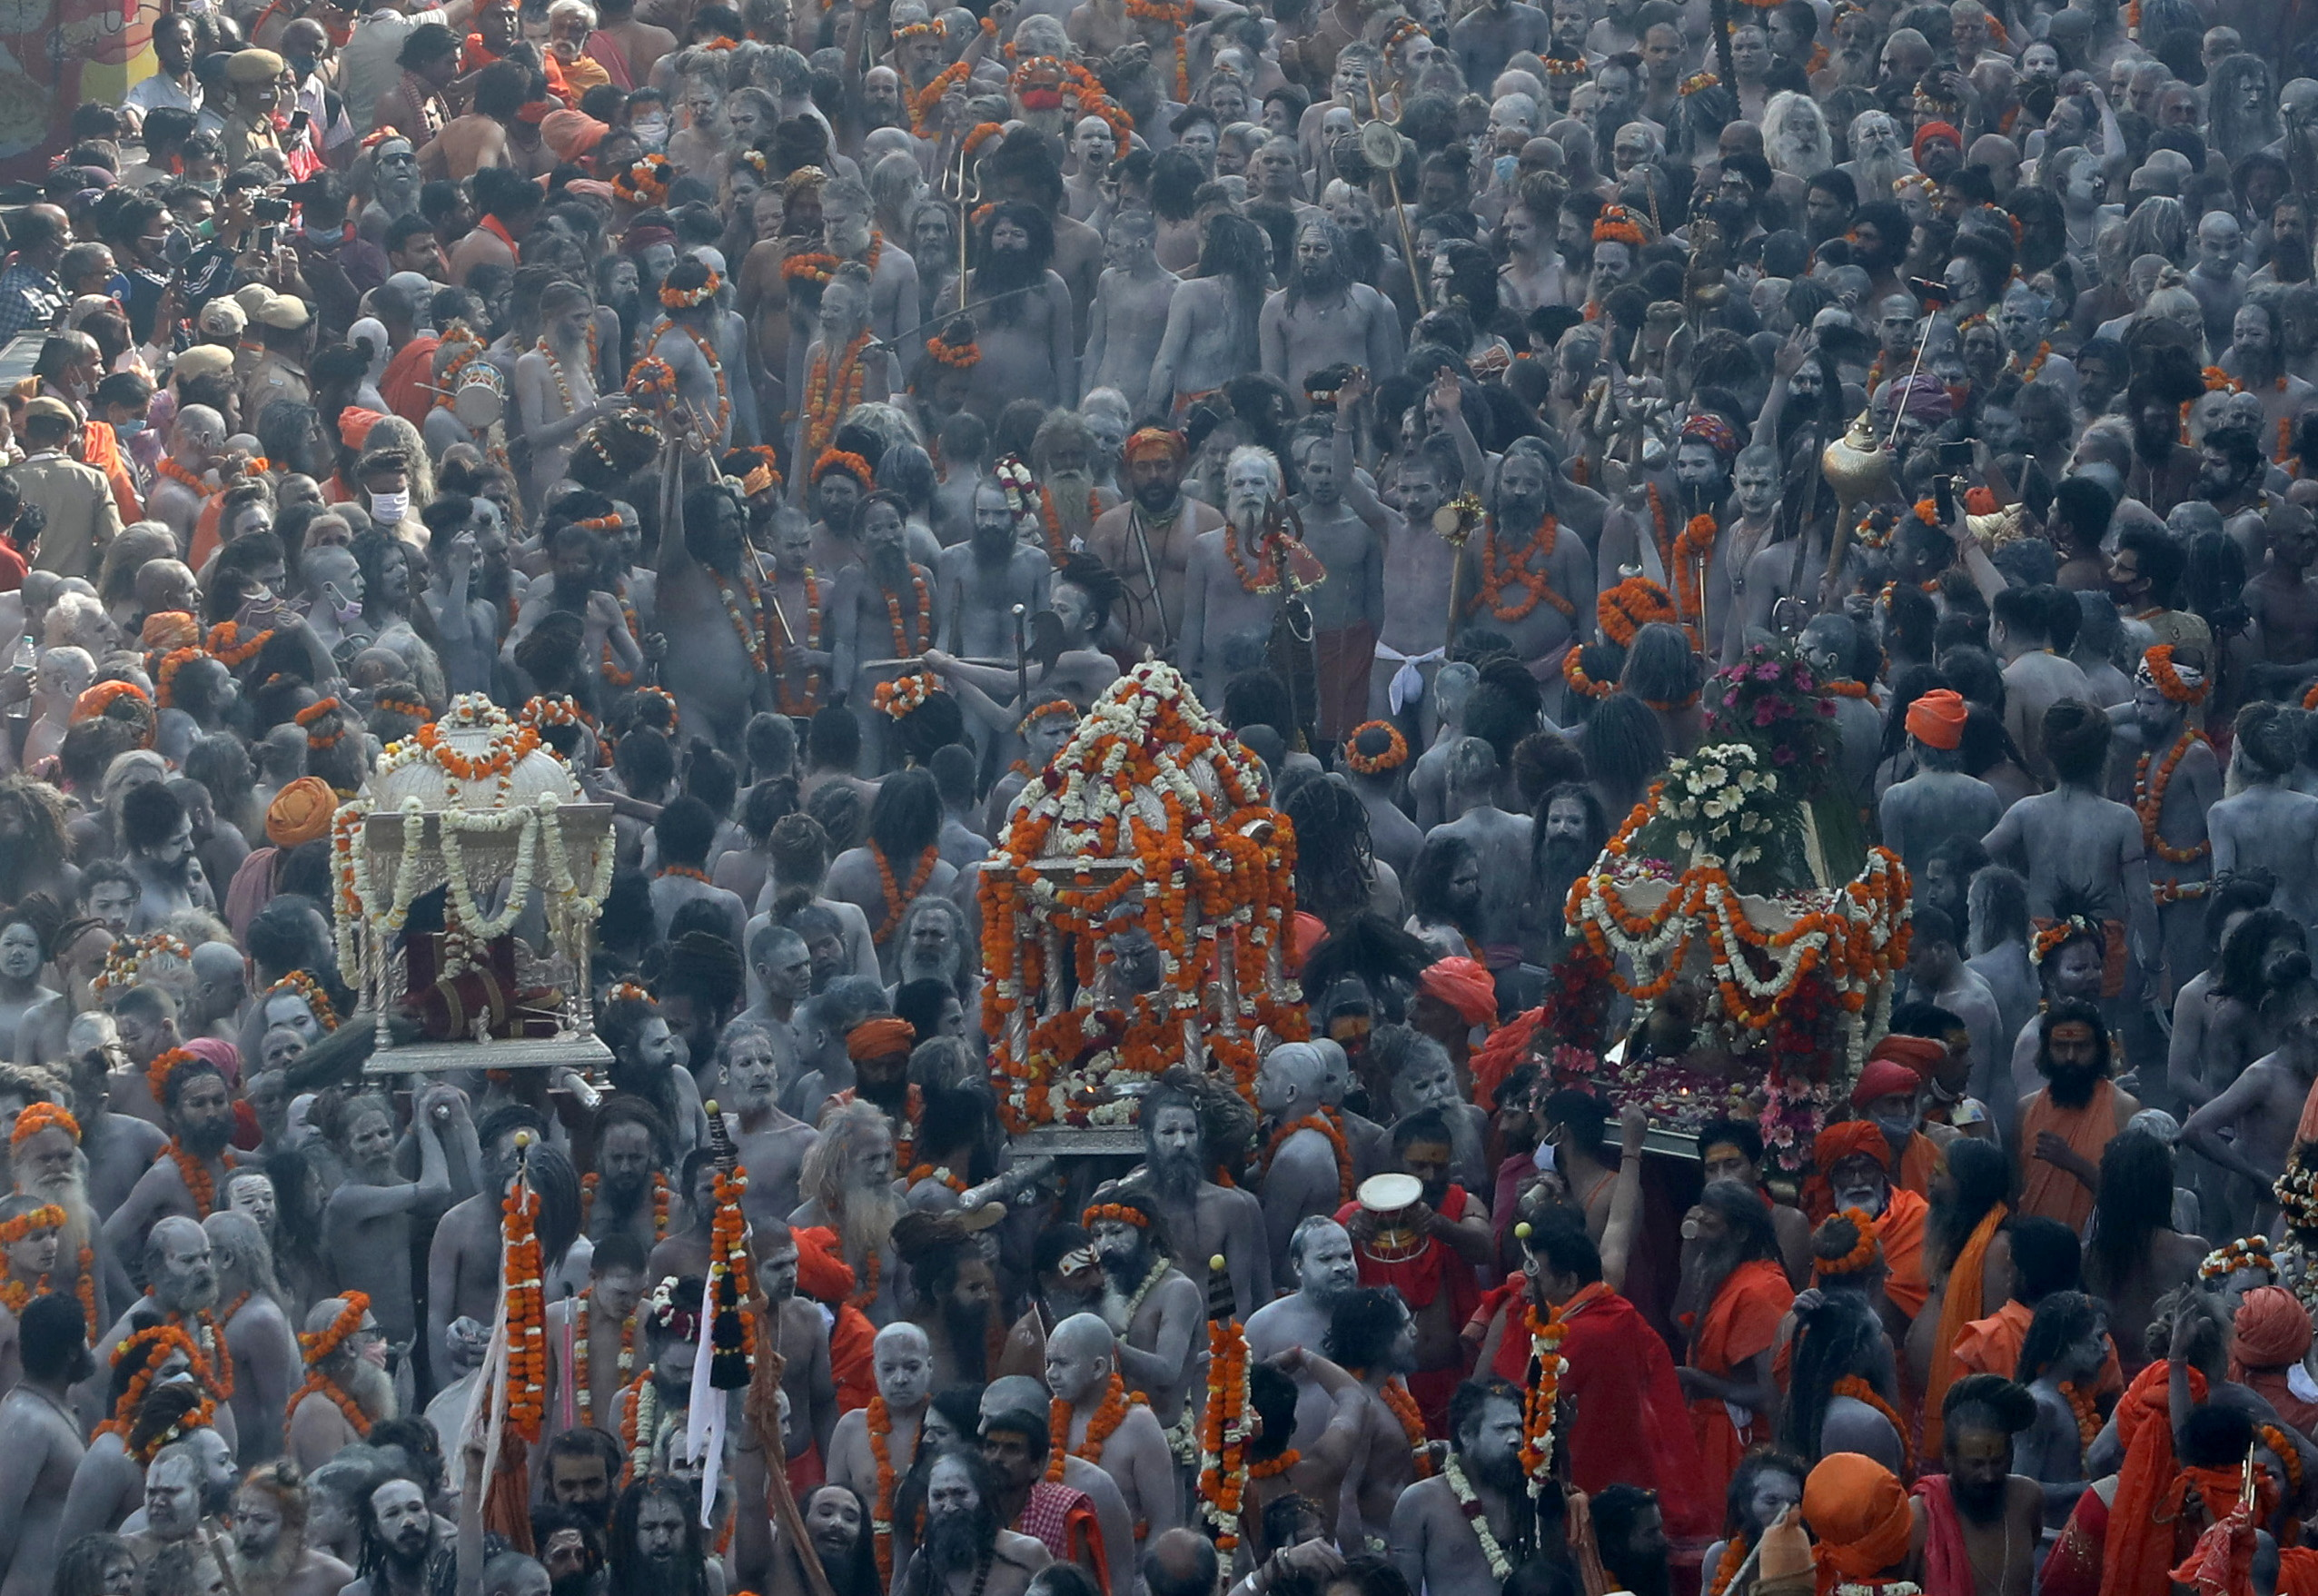 SENSITIVE MATERIAL. THIS IMAGE MAY OFFEND OR DISTURB  Naga Sadhus, or Hindu holy men participate in a procession to take a dip in the Ganges river during Shahi Snan at